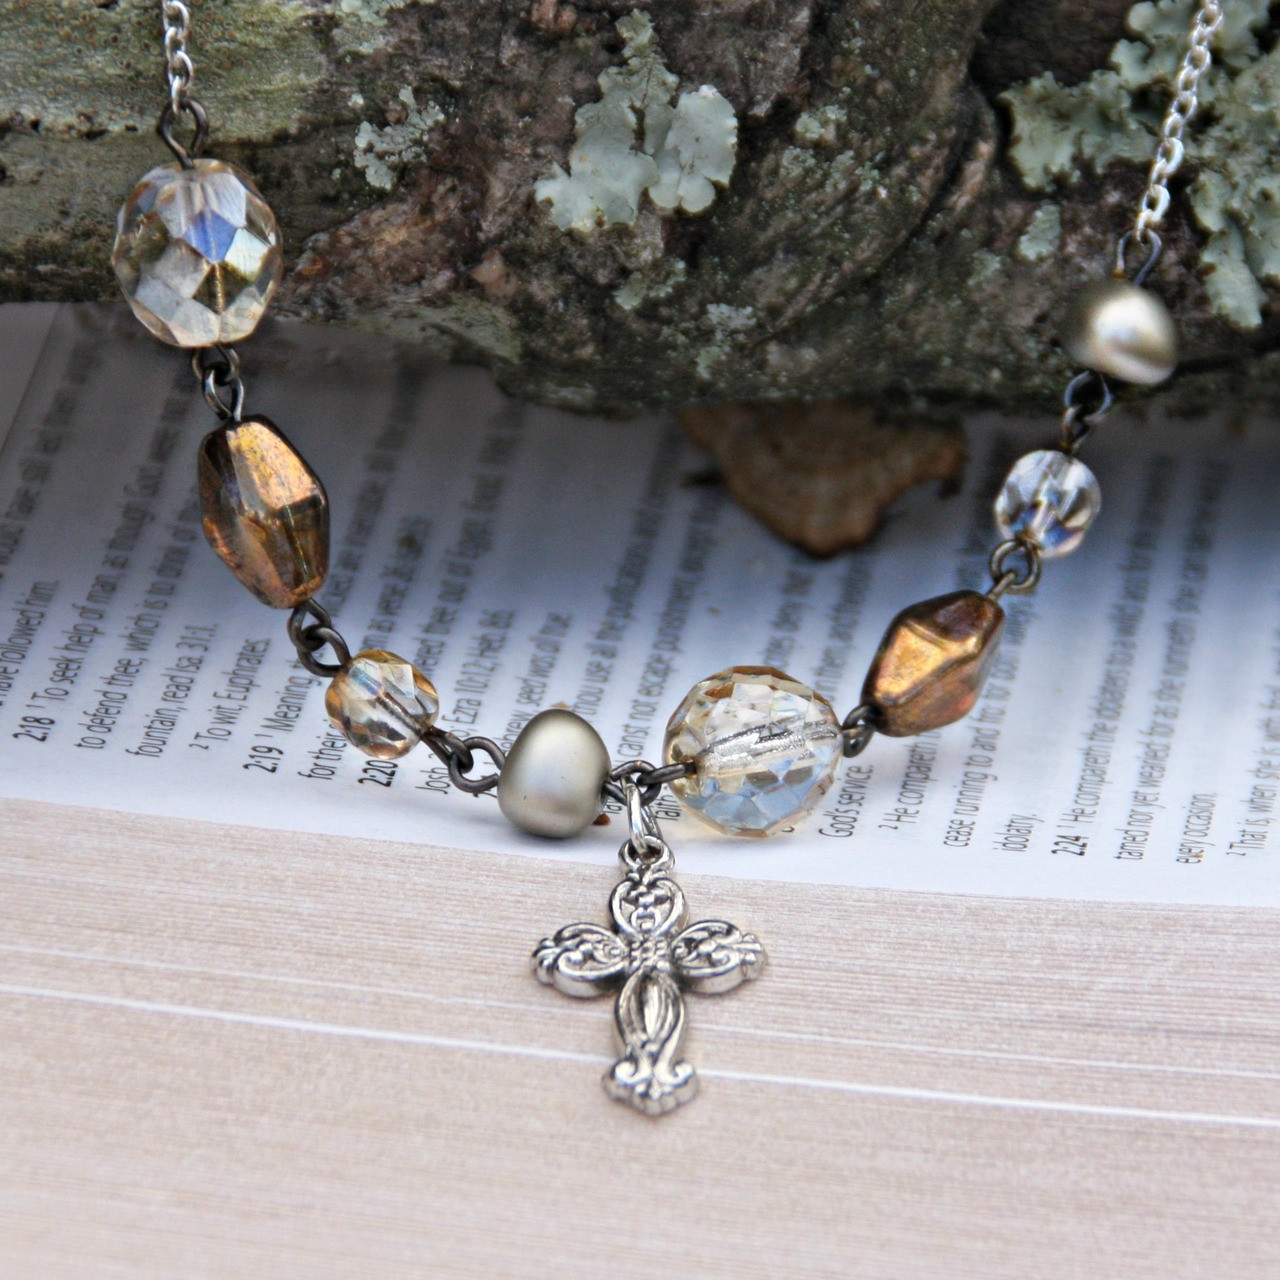 IN-503 Elegant Beaded Cross Necklace